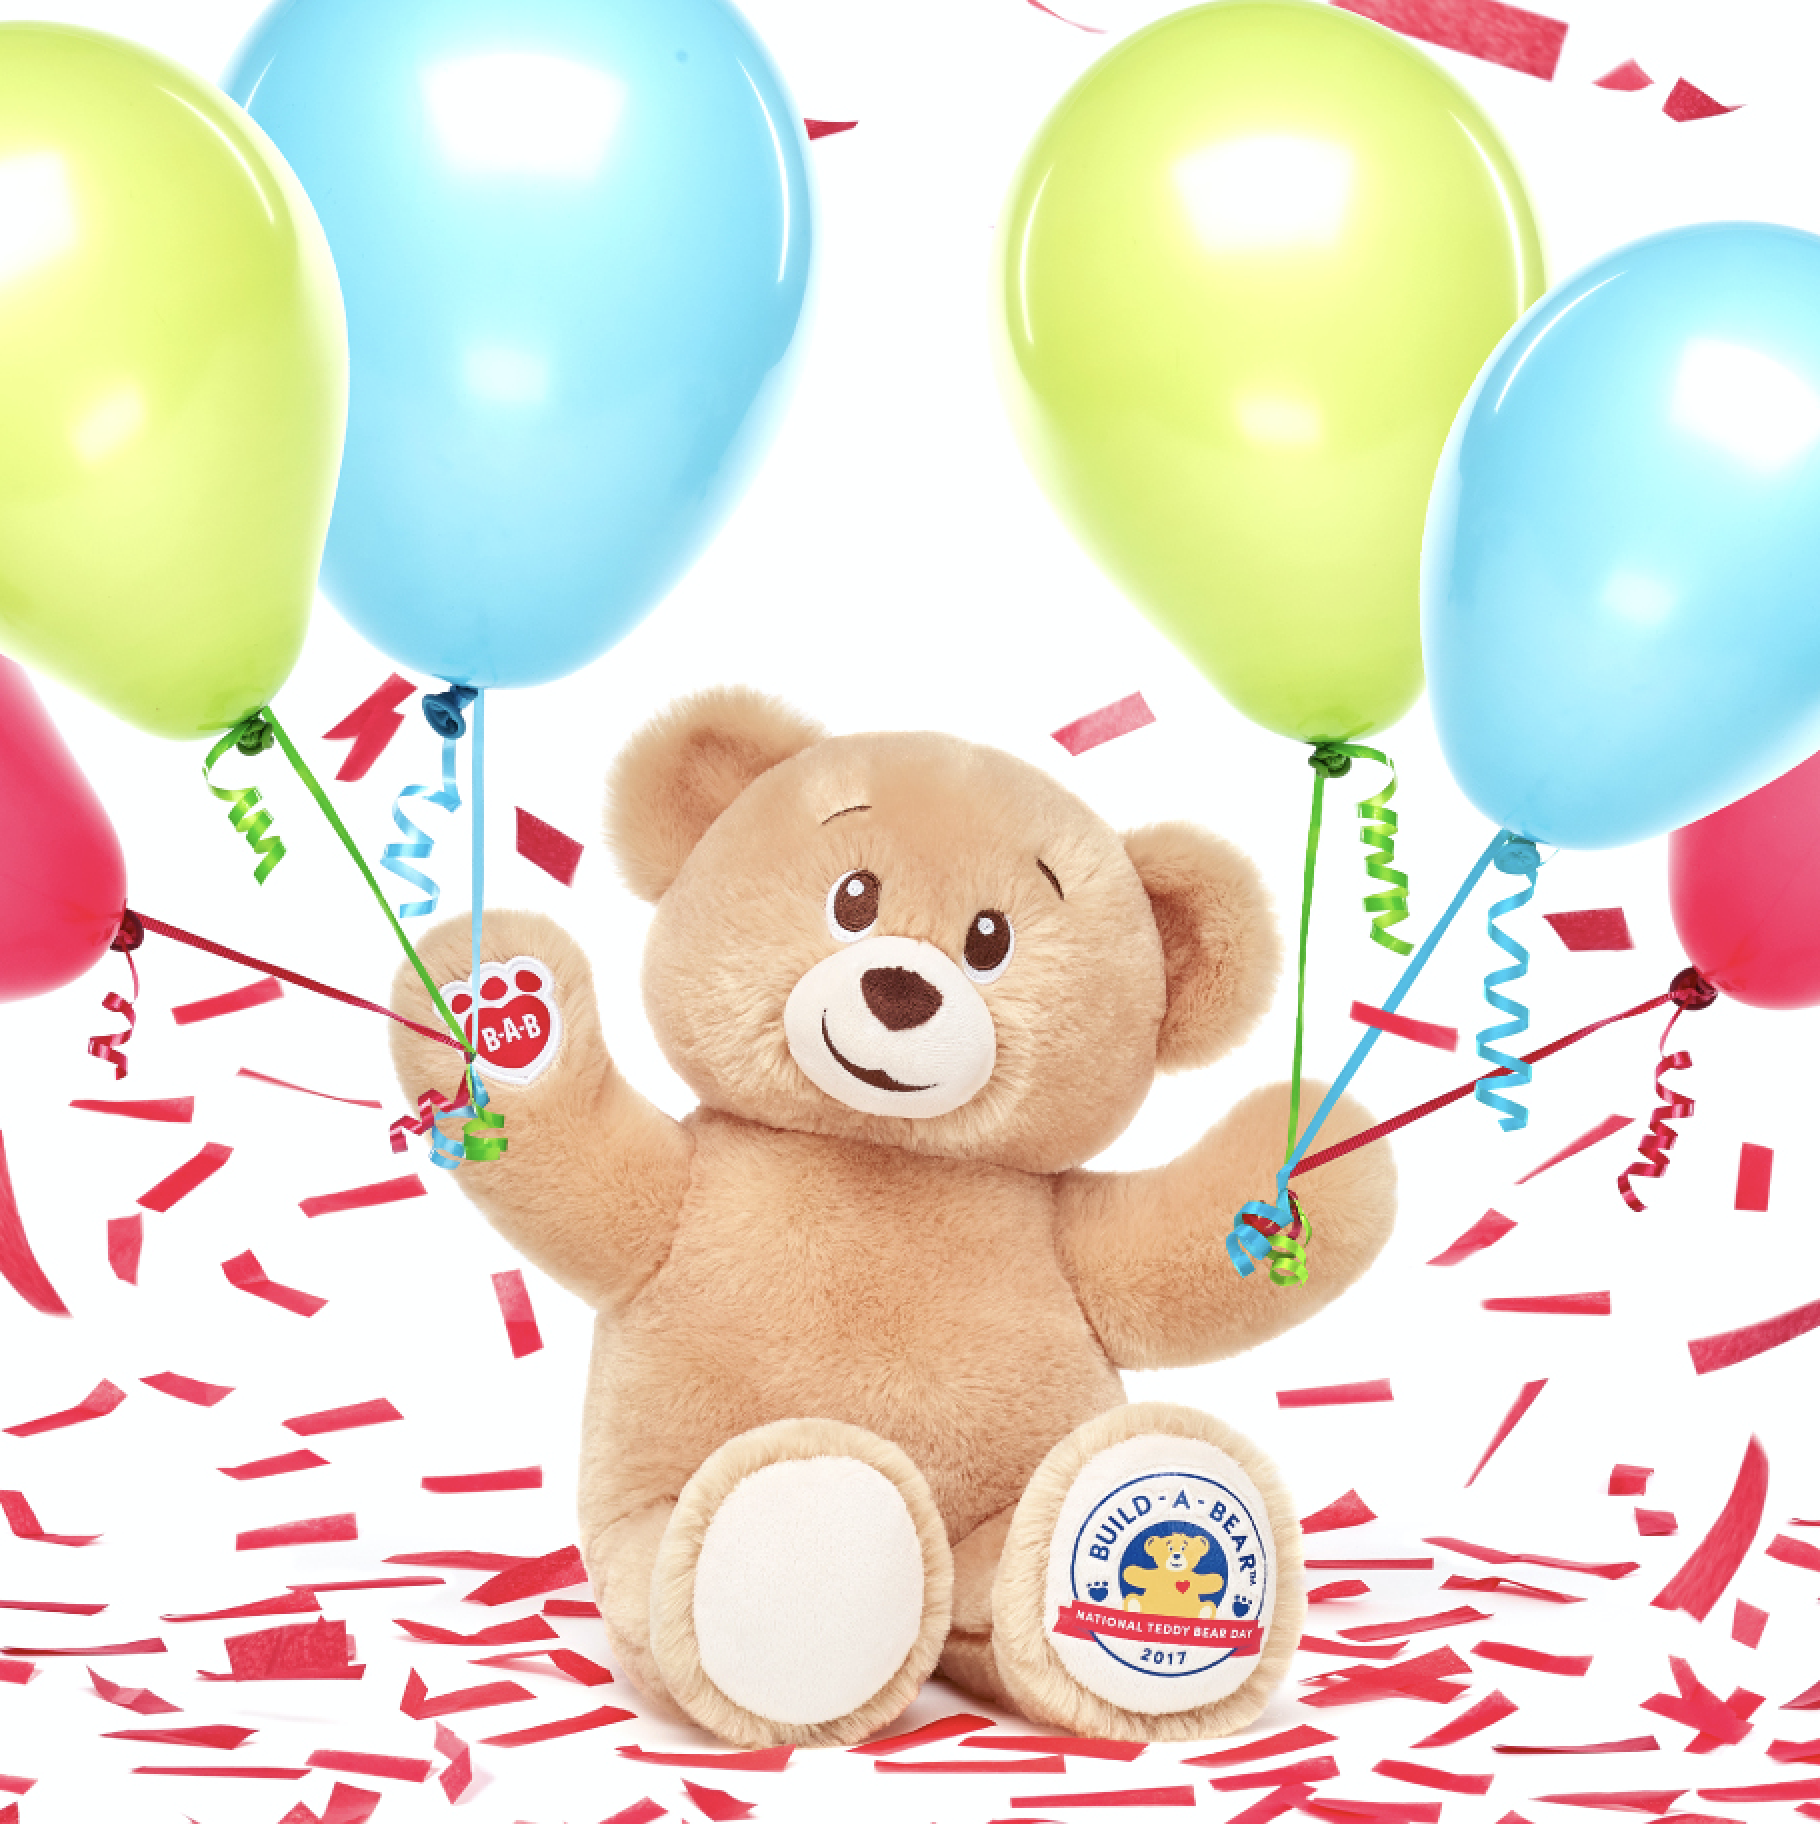 Celebrate National Teddy Bear Day with Build-A-Bear Workshop!